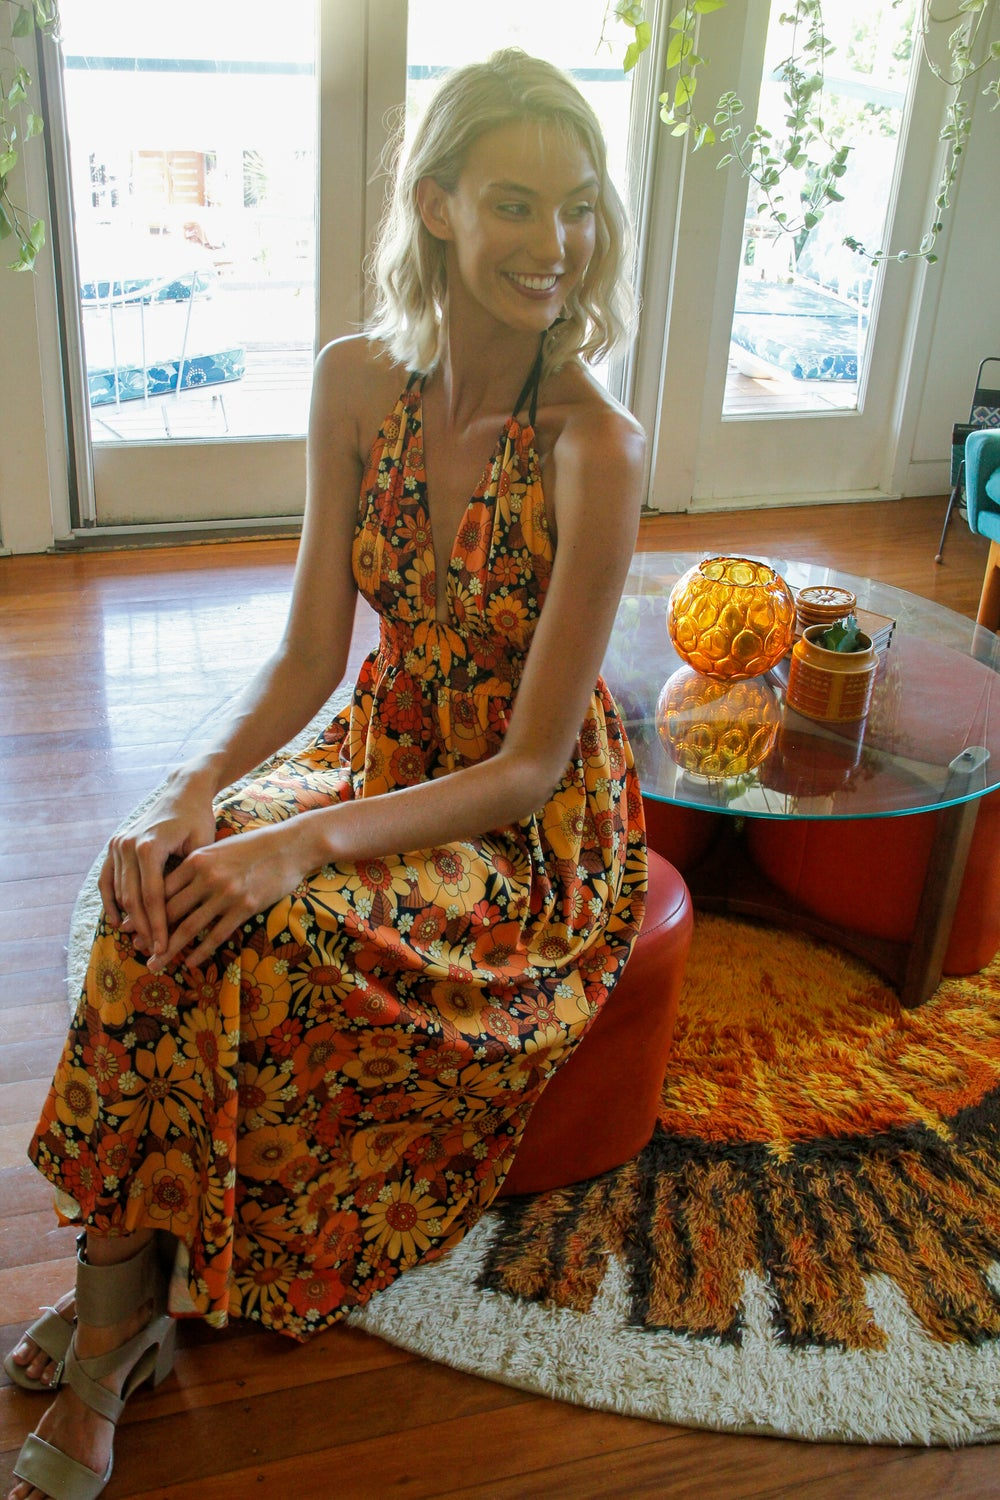 Honey bunch halter dress in Come and get your love orange